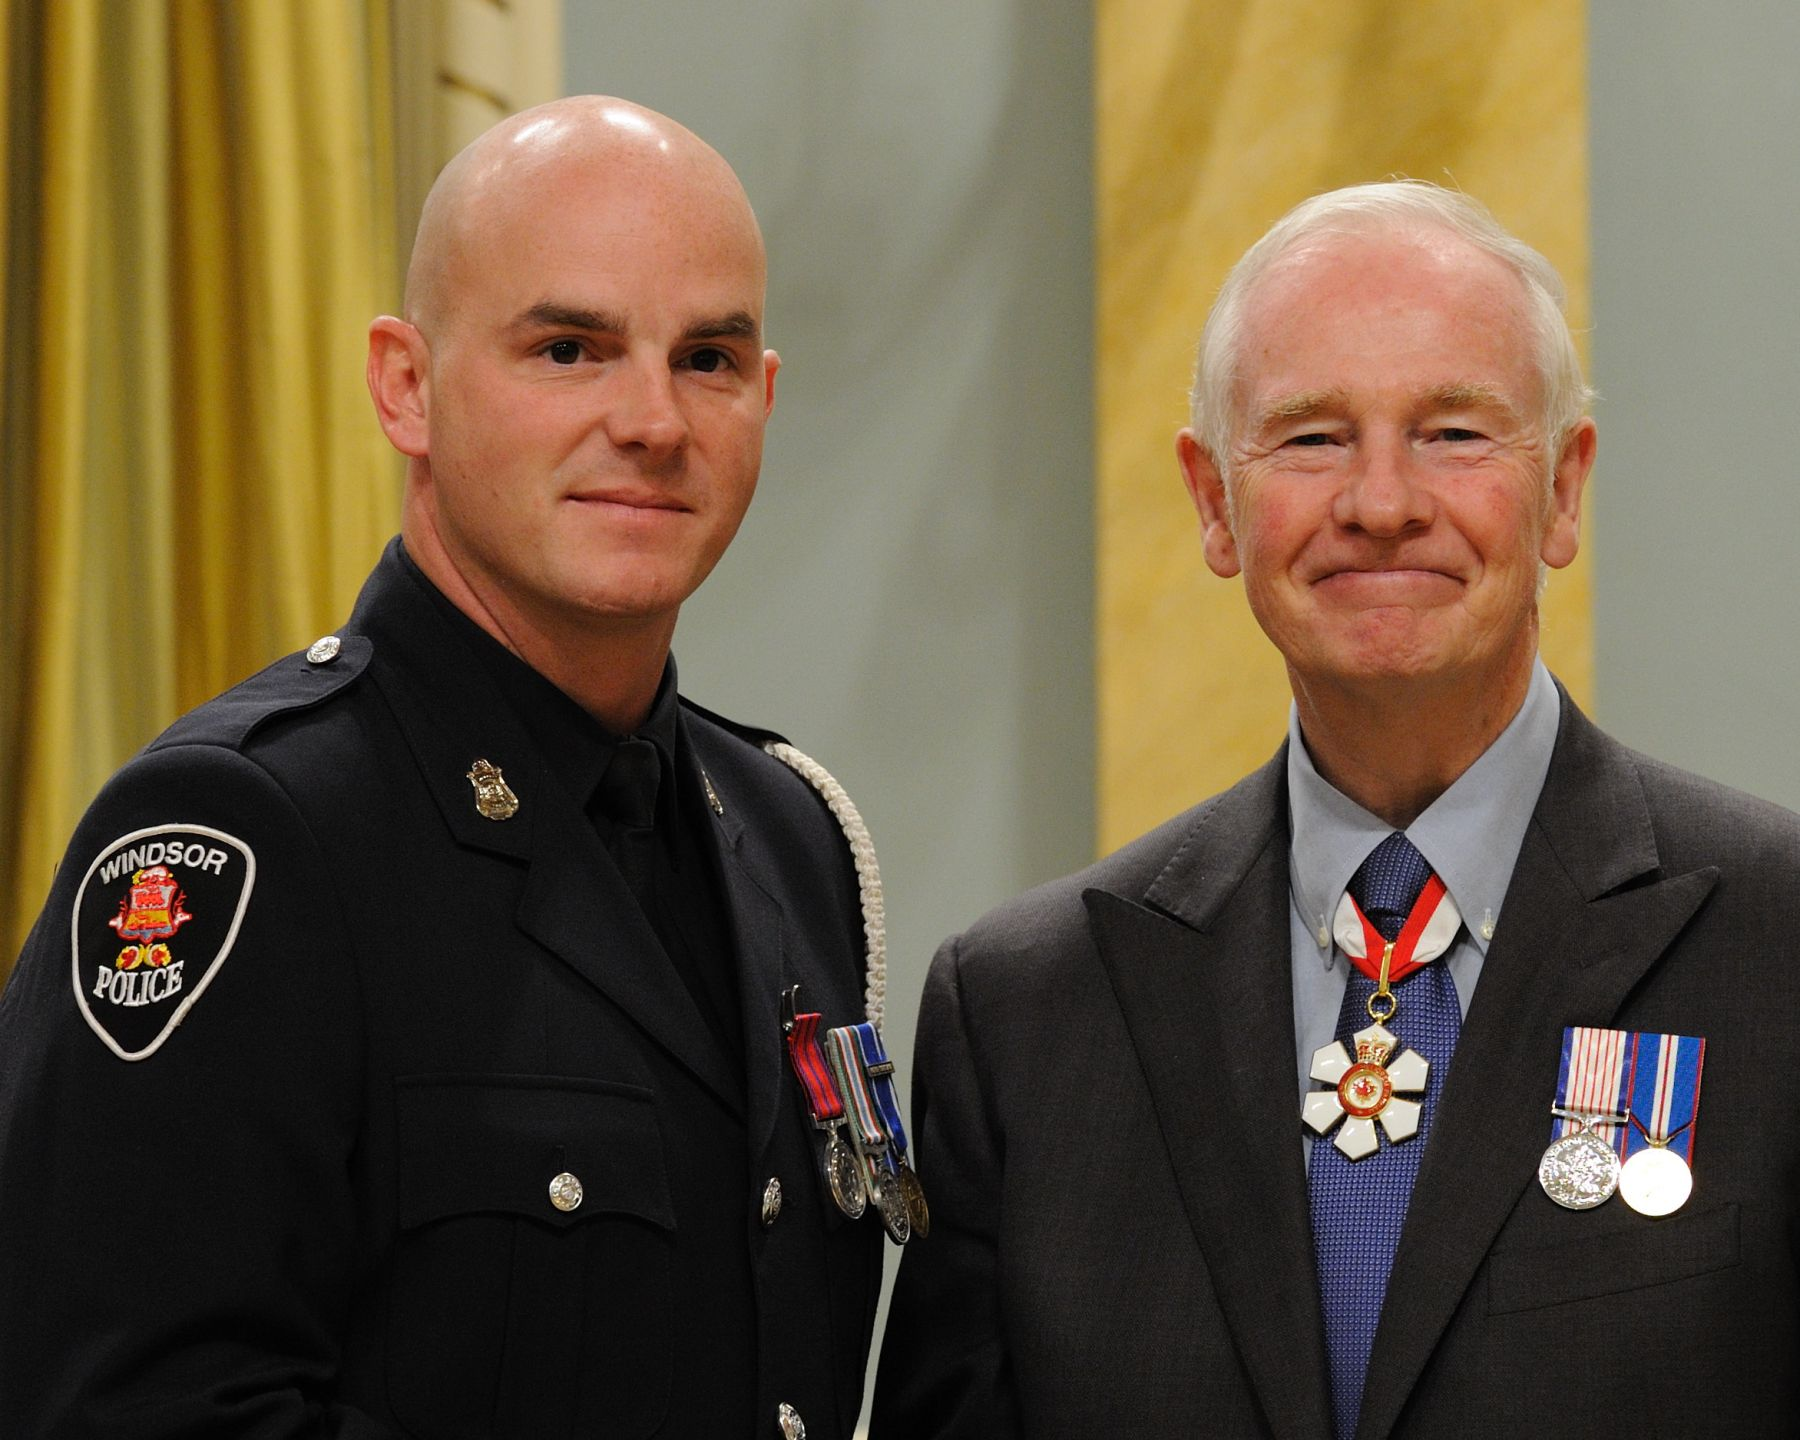 On June 17, 2008, constables Michael Gallant, M.B. and Phillip Kolody, M.B. (Windsor, Ontario), of the Windsor Police Service, rescued four people from a burning house, in Windsor, Ontario. On patrol in the area, the constables noticed the fire. Once inside the dwelling, they located and woke the victims. The constables evacuated the family, and returned inside to search for other possible individuals trapped inside. In spite of the flames, the intense heat and the thick black smoke they ensured that no one else was inside, before evacuating nearby homes.